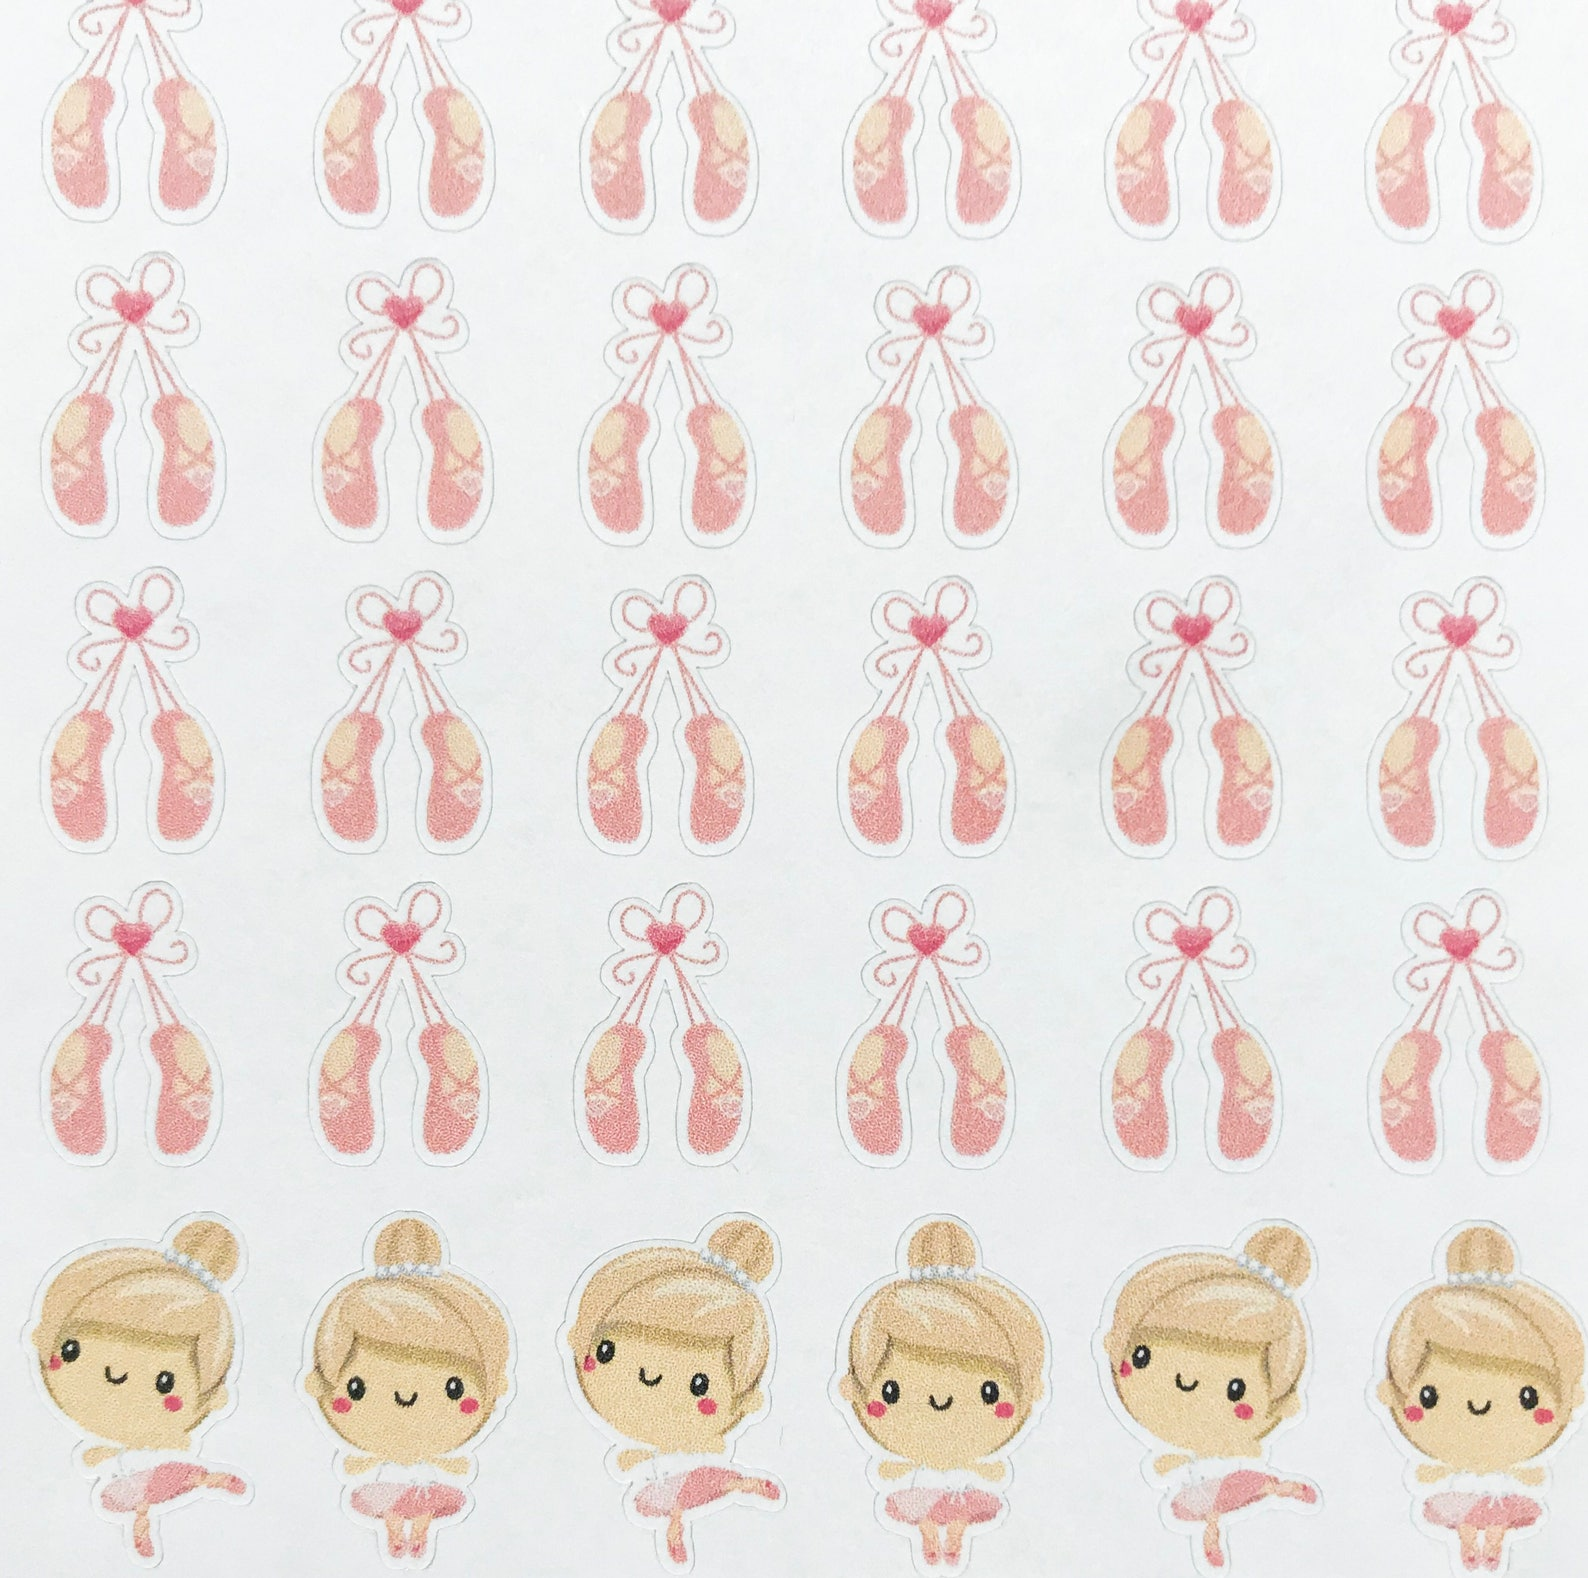 dance planner stickers, ballet stickers, ballet shoes stickers